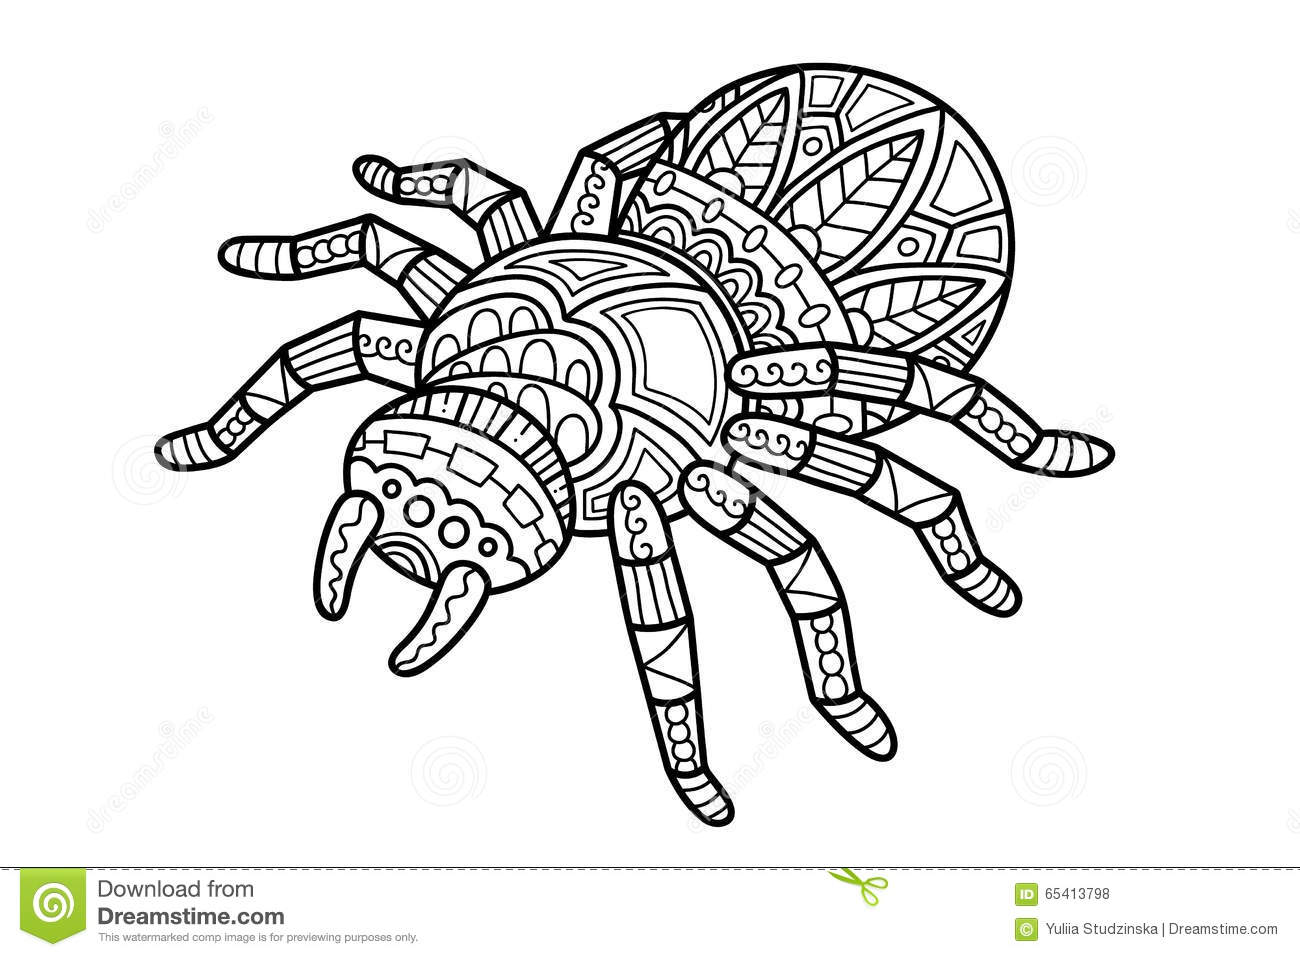 Cute Spider Stock Vector Illustration Of Contour